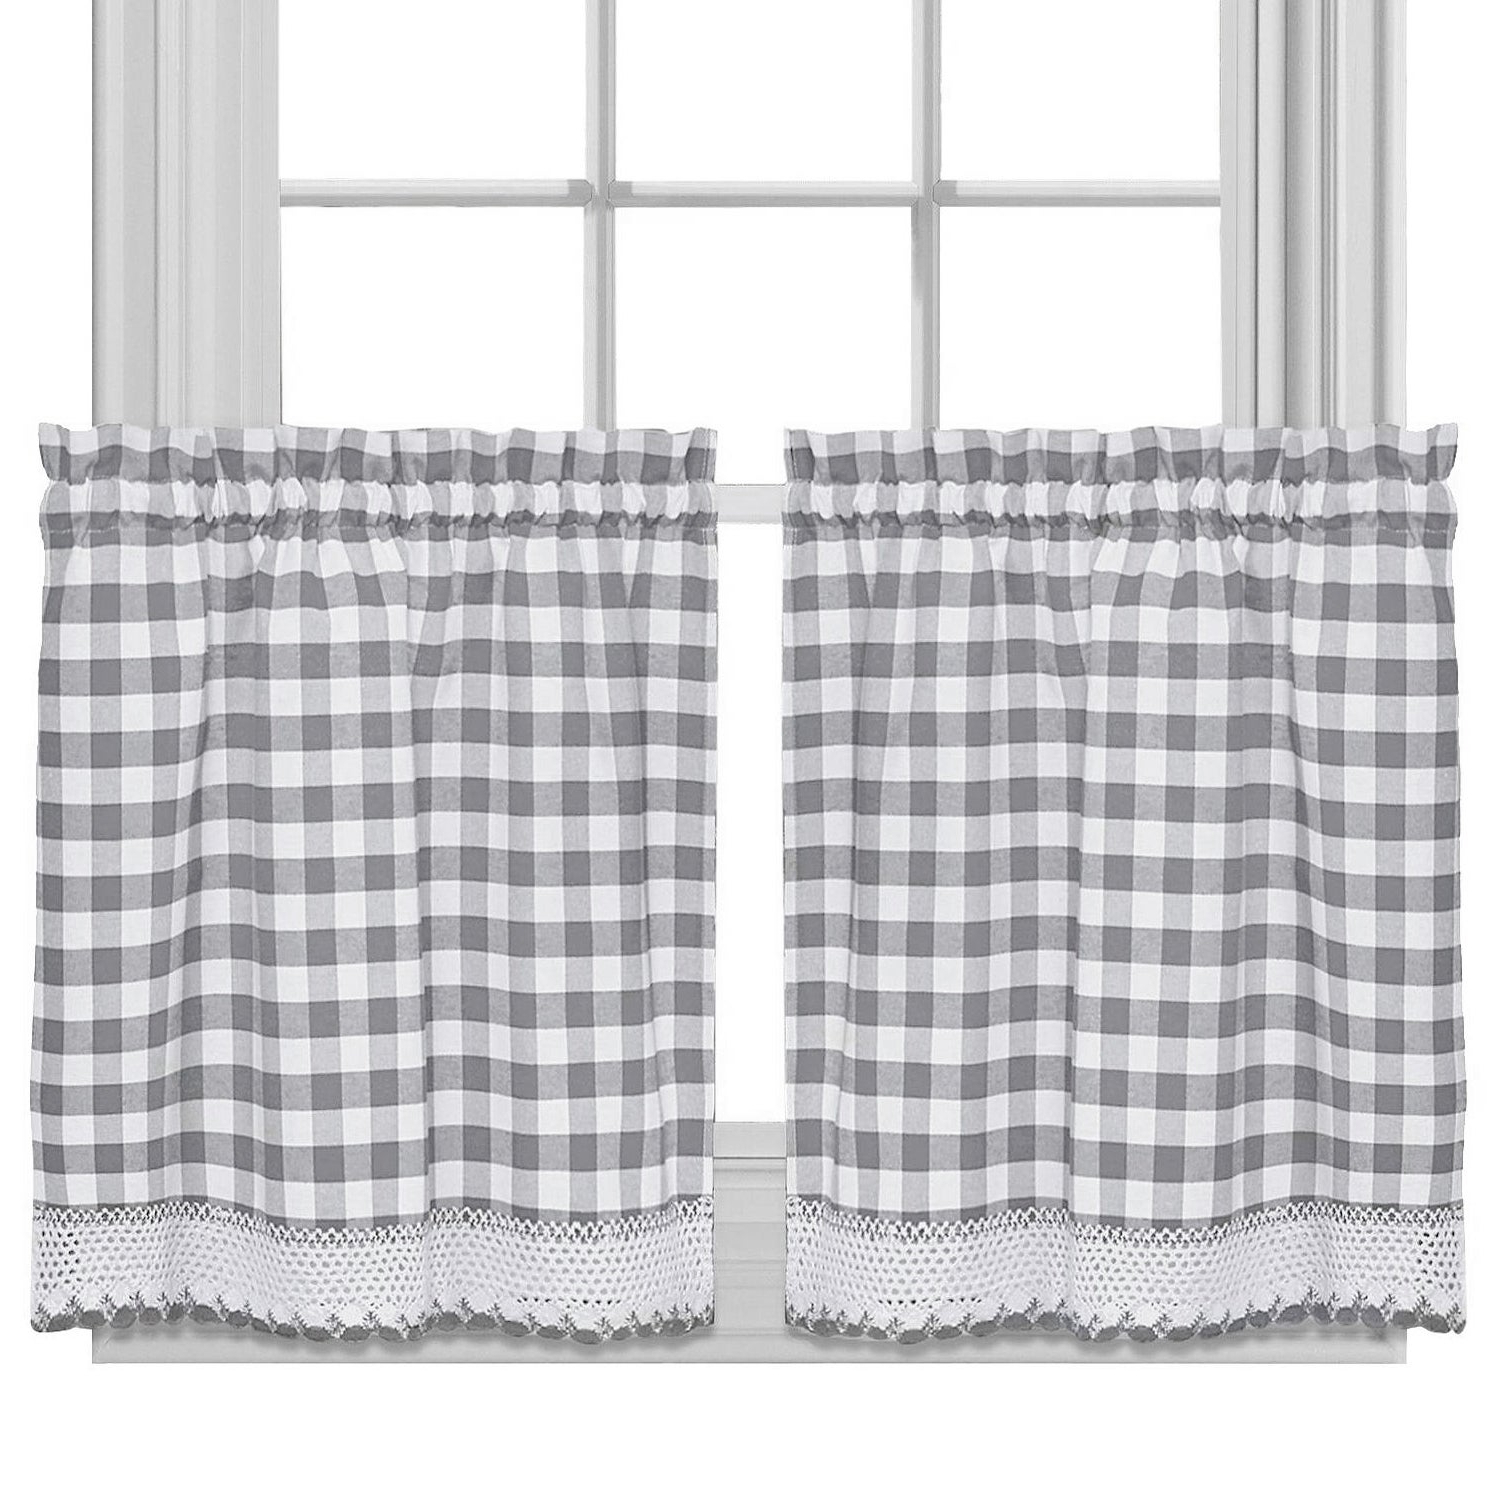 Widely Used Classic Navy Cotton Blend Buffalo Check Kitchen Curtain Sets Intended For Buffalo Check Cotton Blend Grey Kitchen Curtain Tier Pair (View 2 of 20)